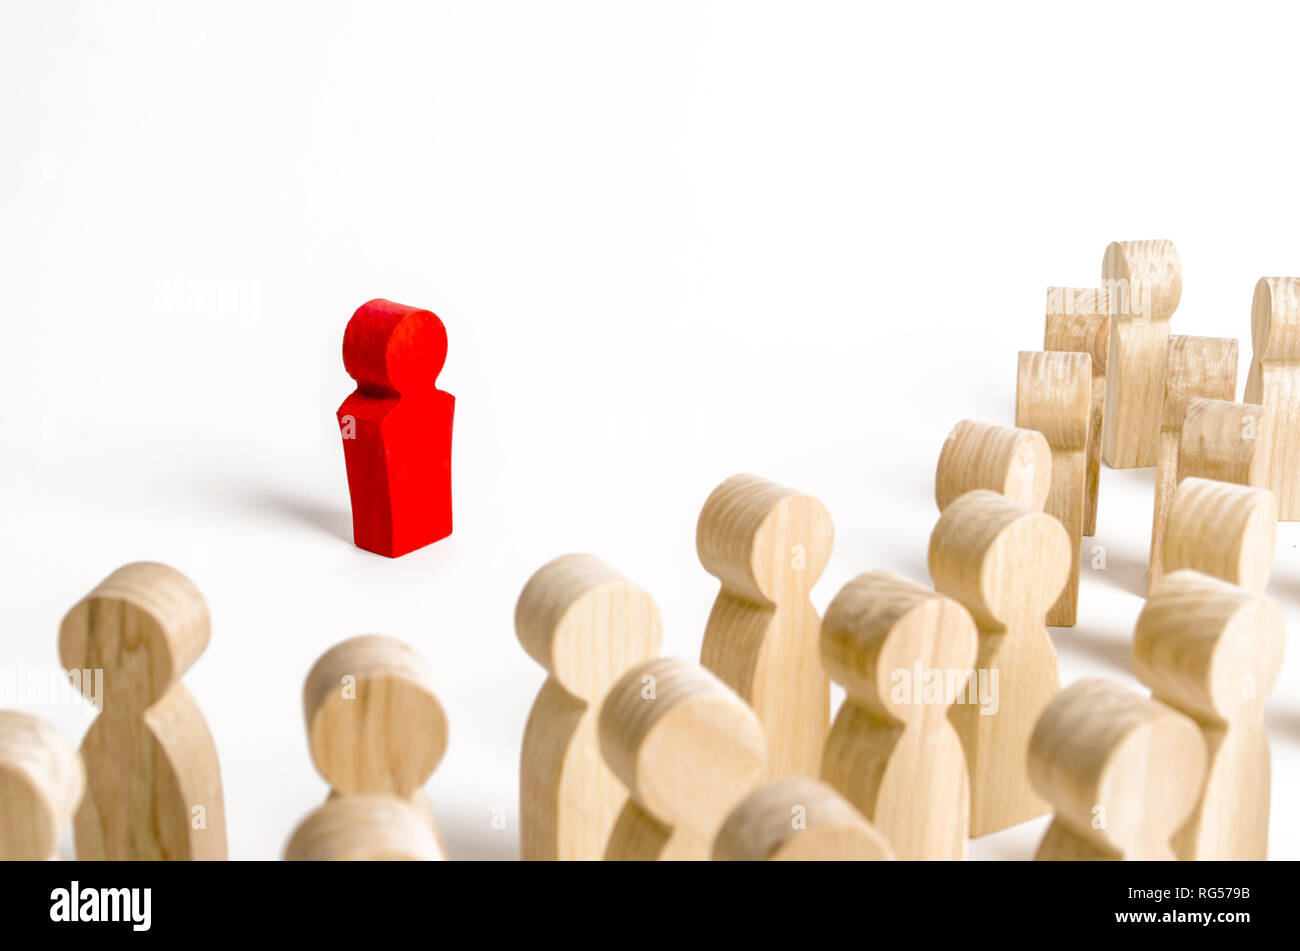 Red figurine of a man in the spotlight of a crowd of people. Leader, leadership and initiator of action. work or business organization. team building. - Stock Image